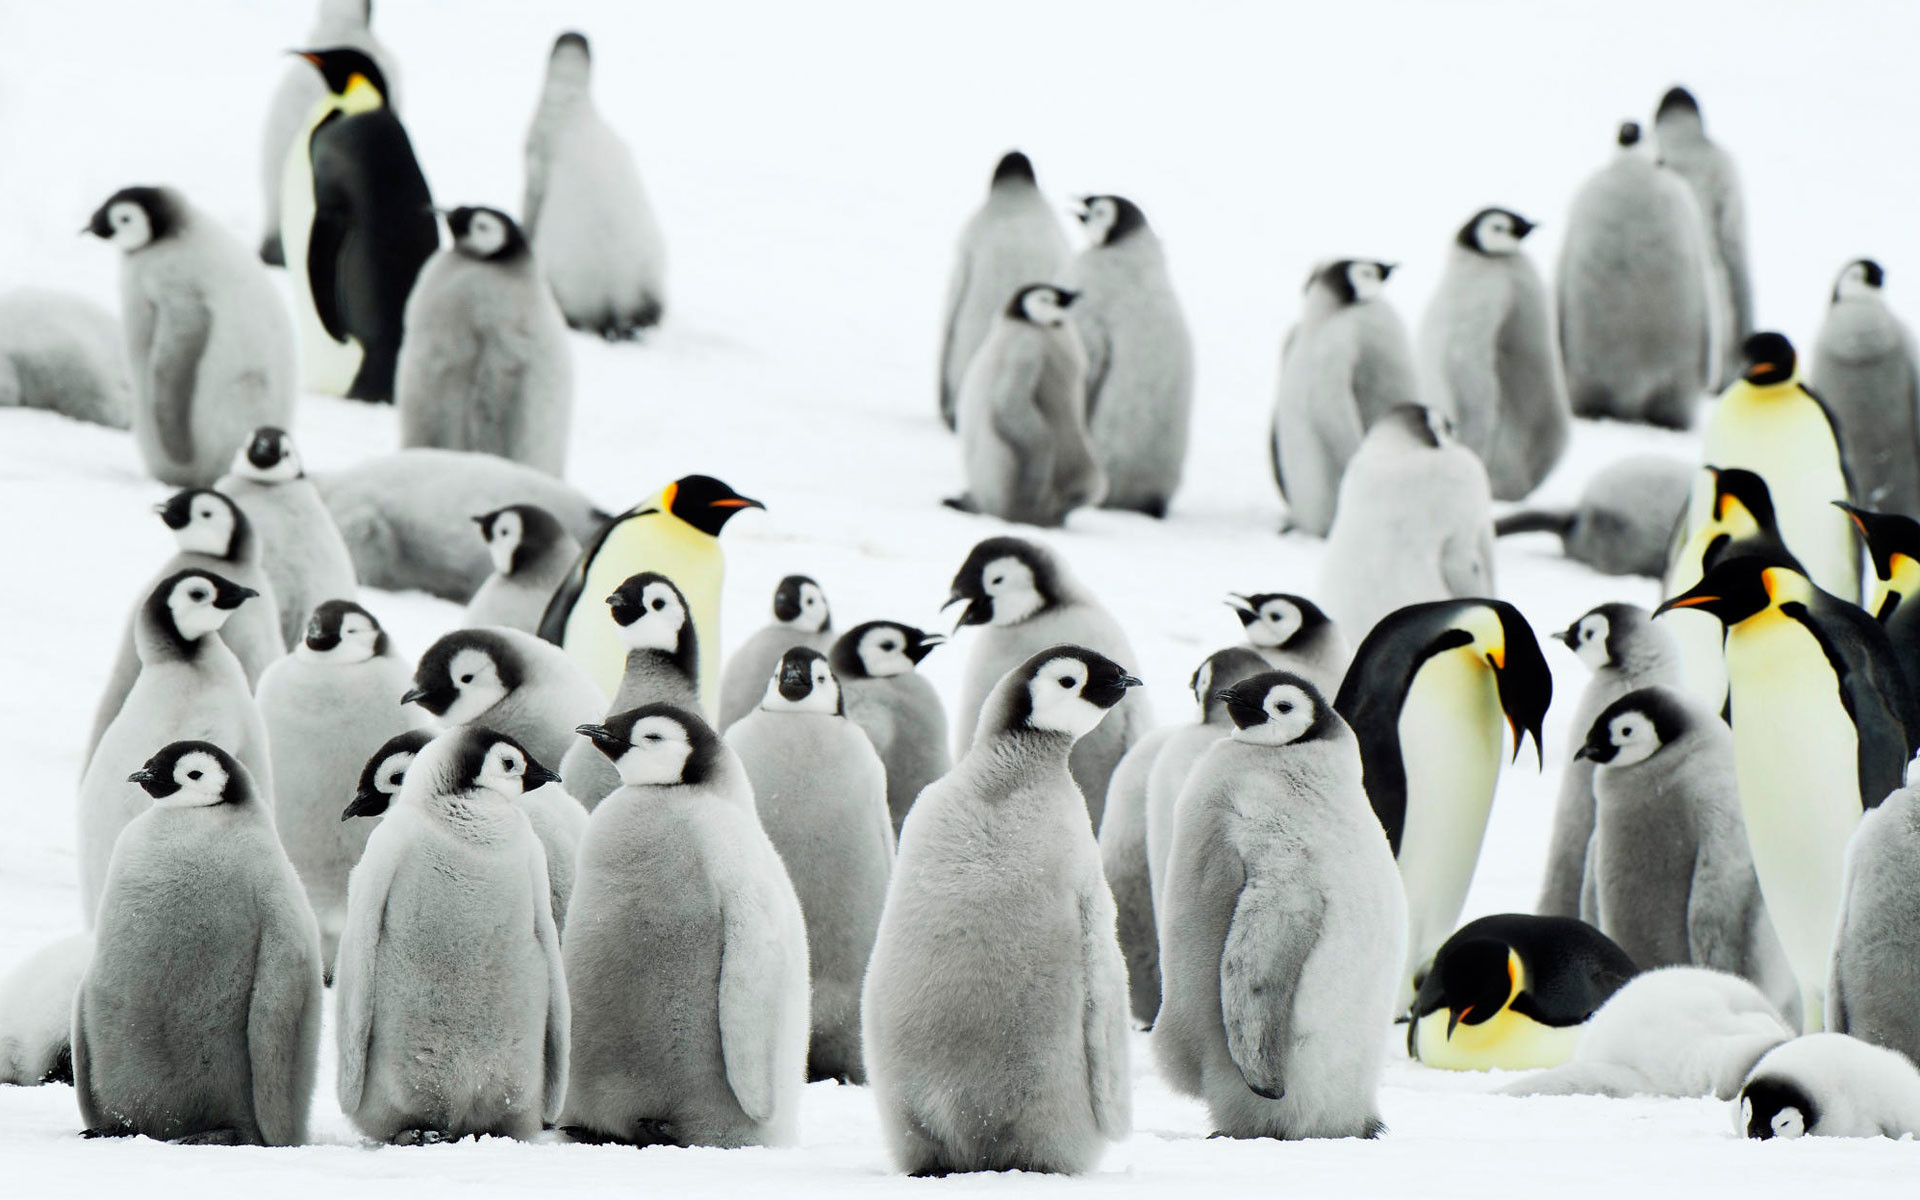 1920x1200 desktop hd antarctic penguins images free download